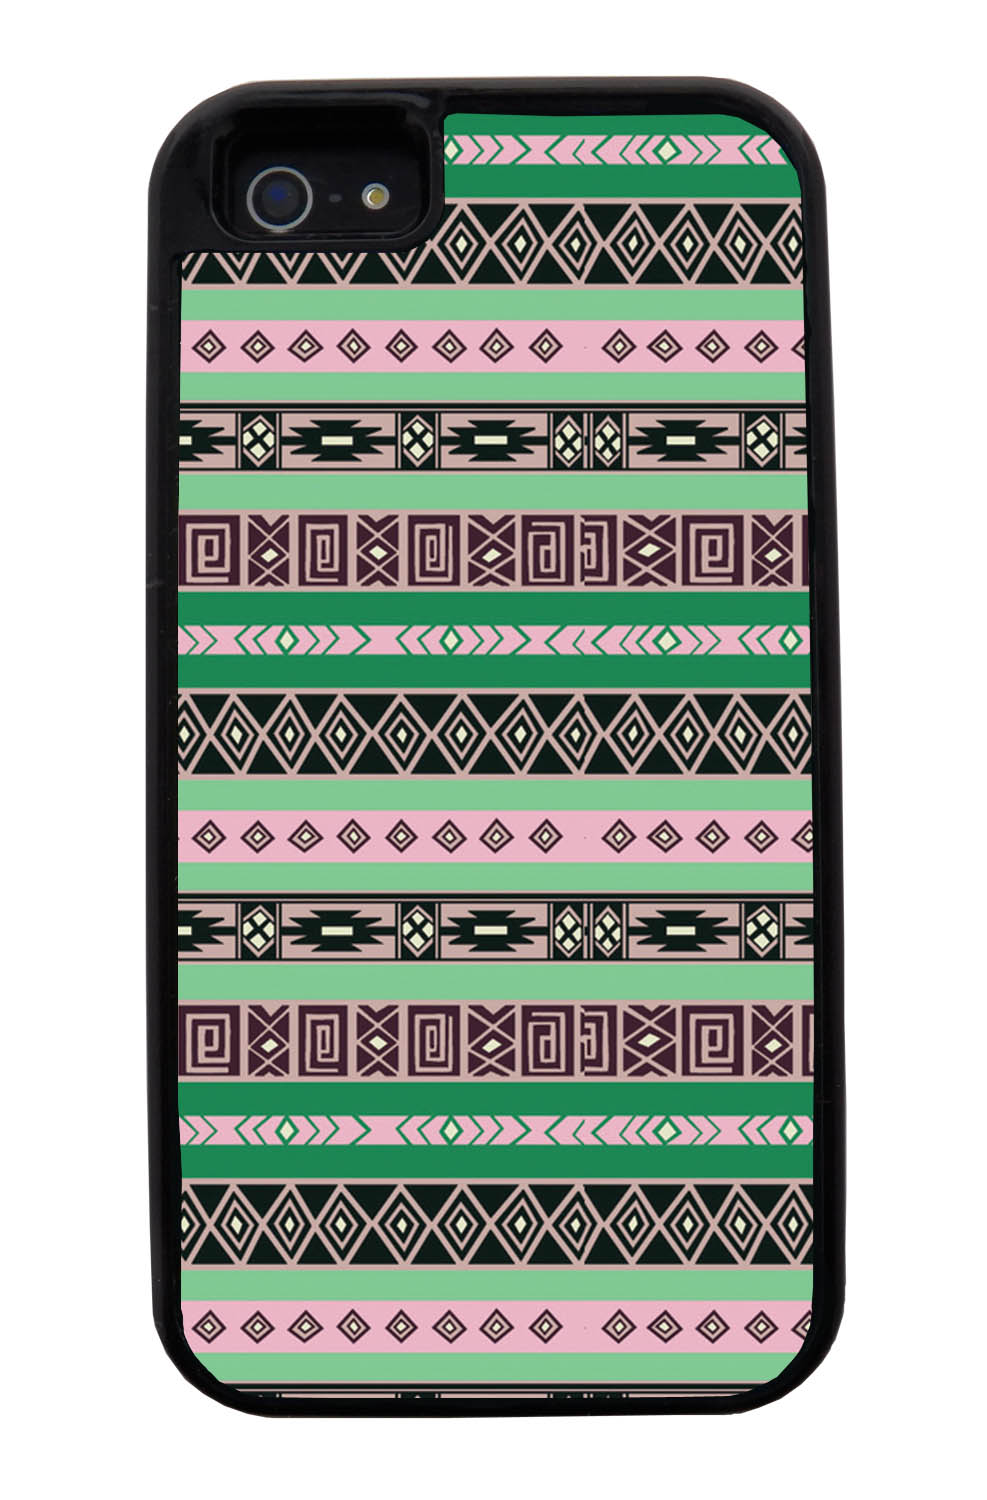 Apple iPhone 5 / 5S Aztec Case - Spring Colored - Geometric - Black Tough Hybrid Case